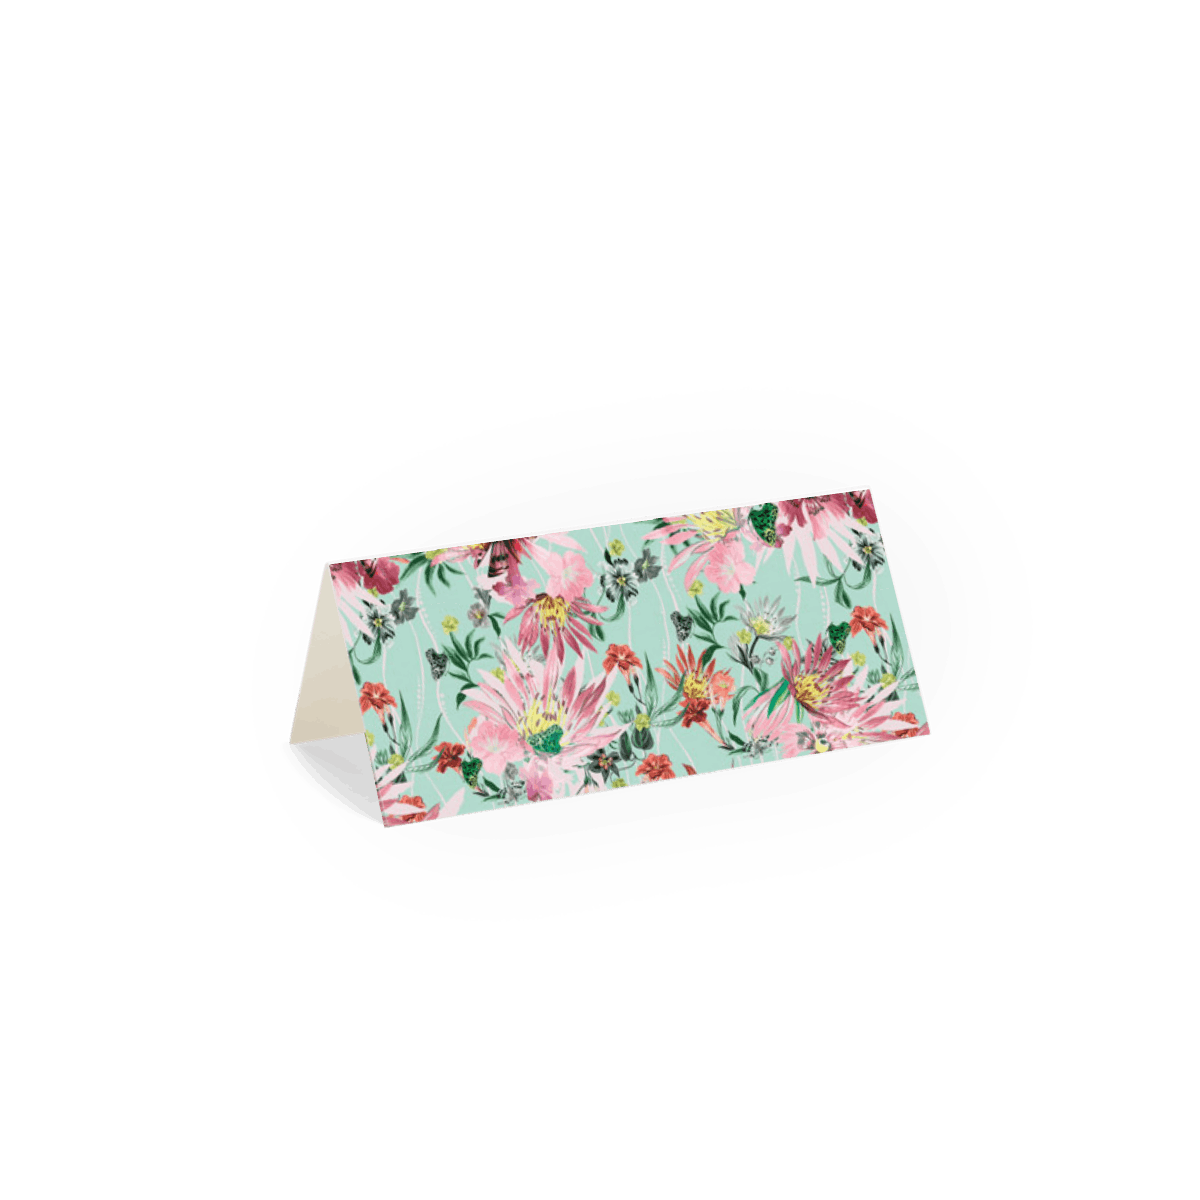 Https%3a%2f%2fwww.papier.com%2fproduct image%2f81796%2f15%2fjungle bloom 19697 arriere 1561994453.png?ixlib=rb 1.1